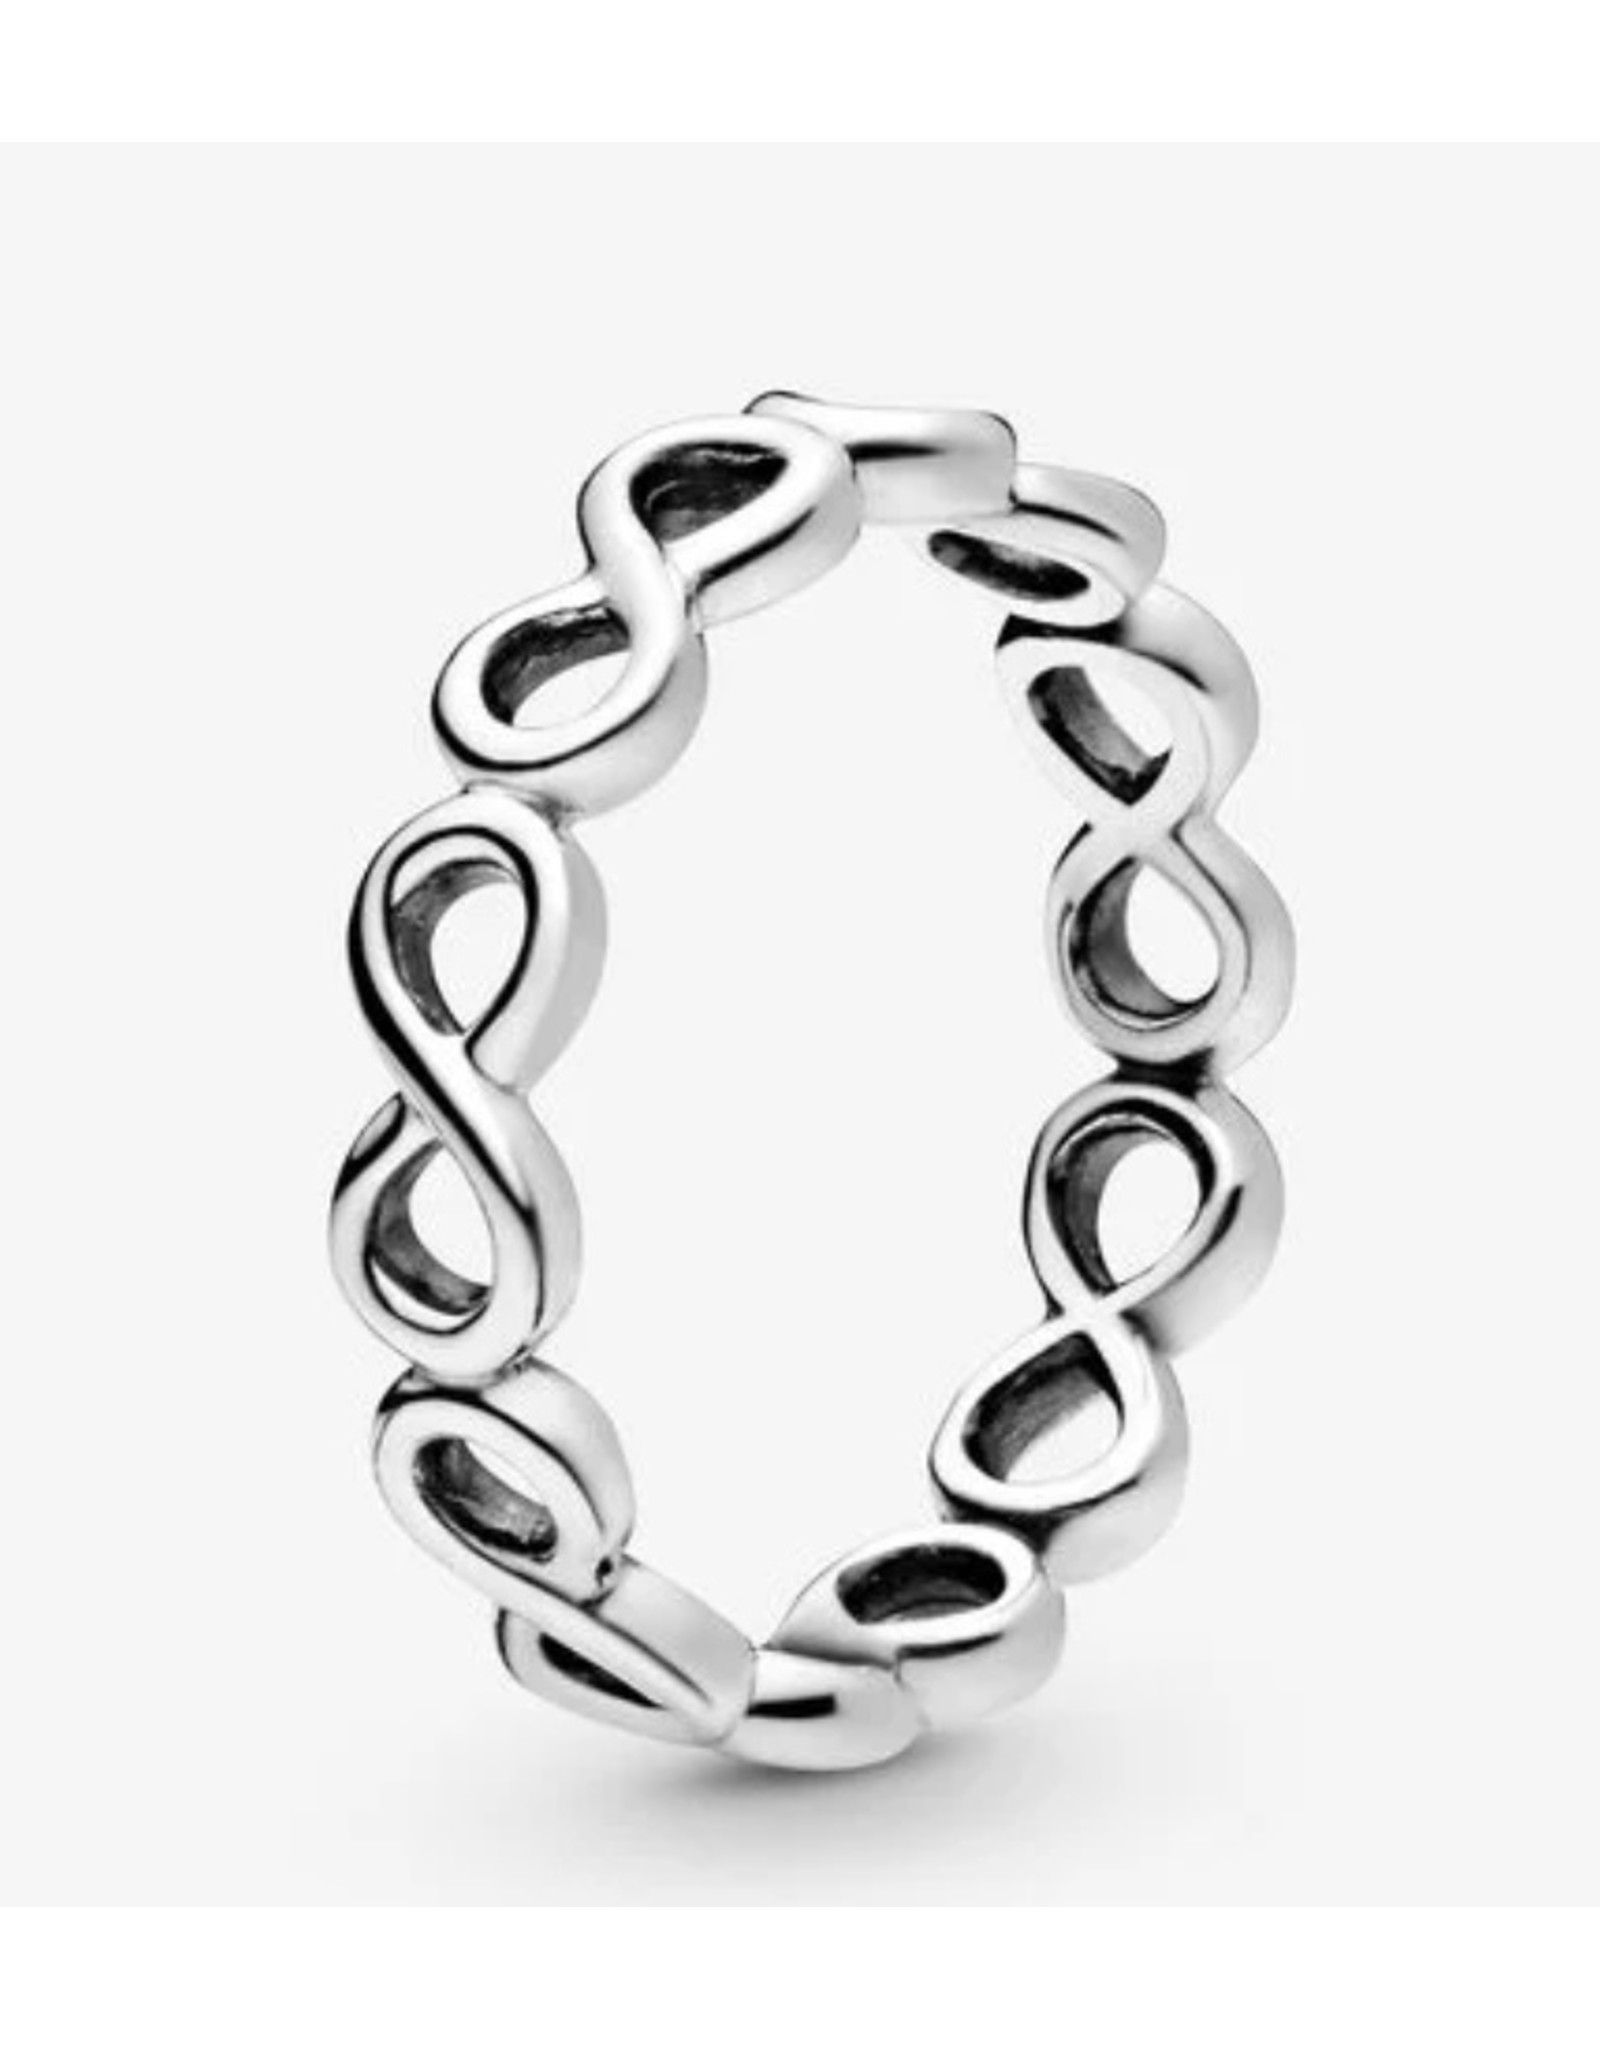 Pandora Pandora Ring,190994, Simple Infinity Band